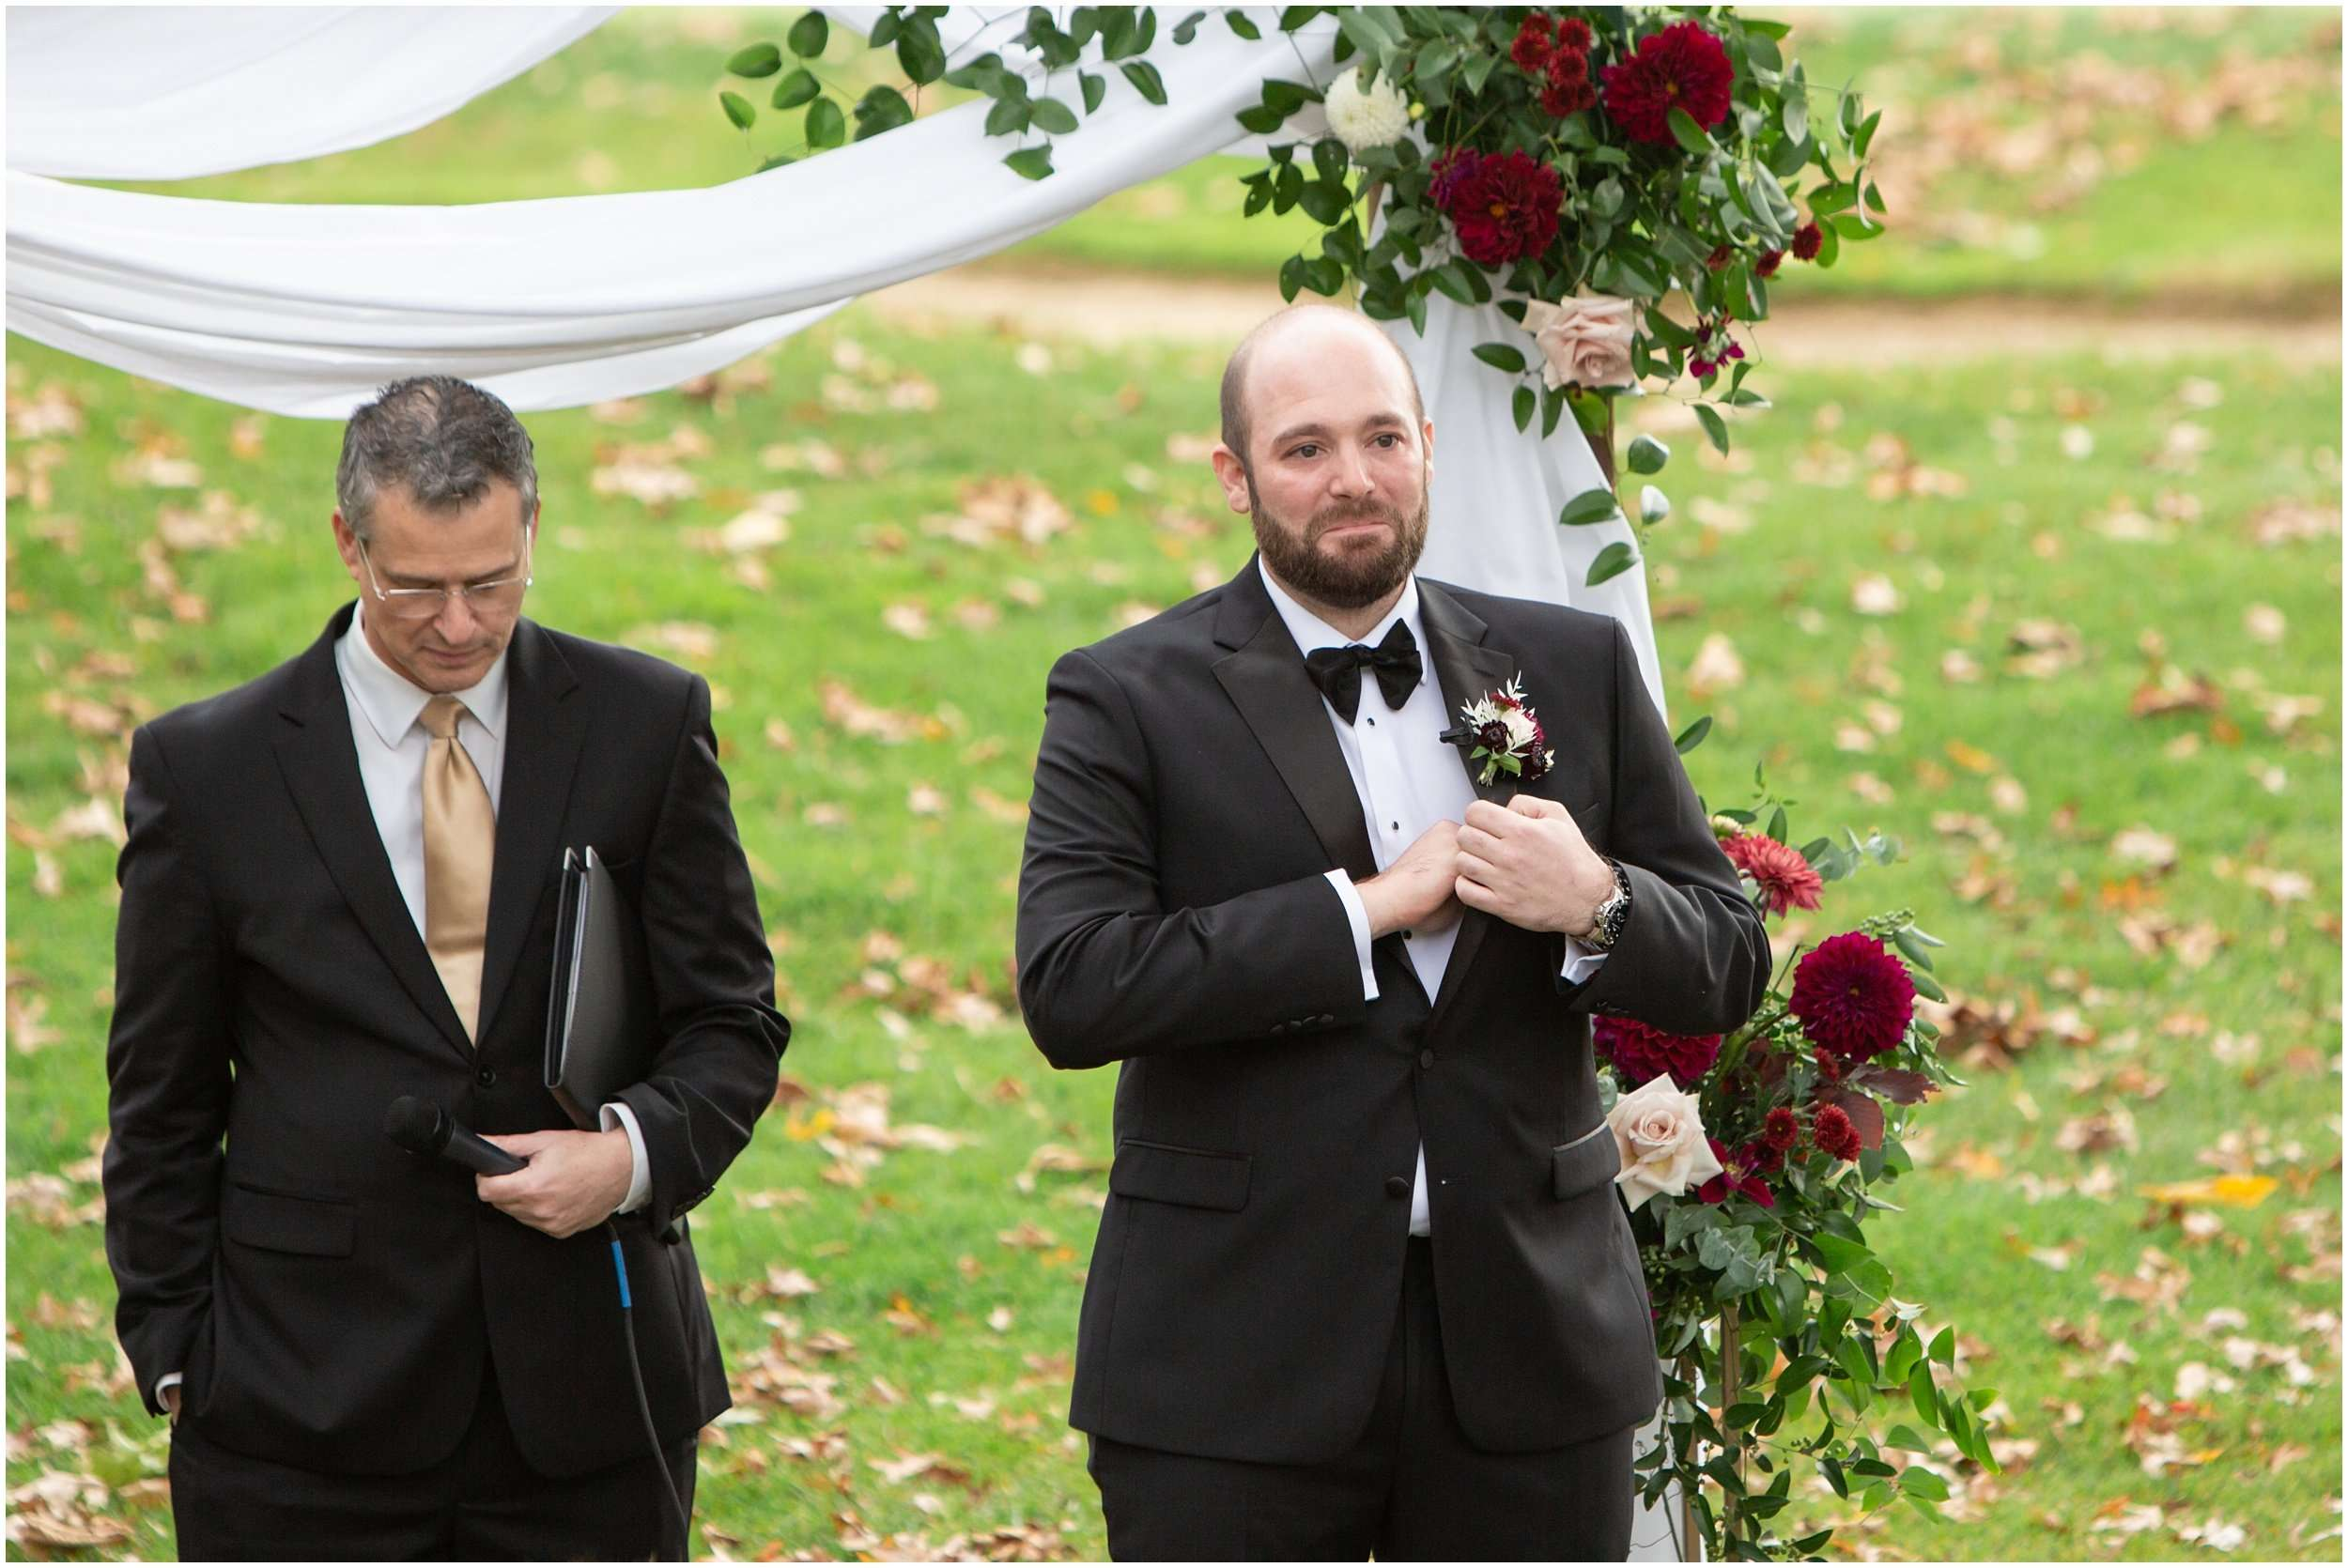 Fall Wedding at the Jefferson Golf and Country Club | Ohio Wedding Photography 124